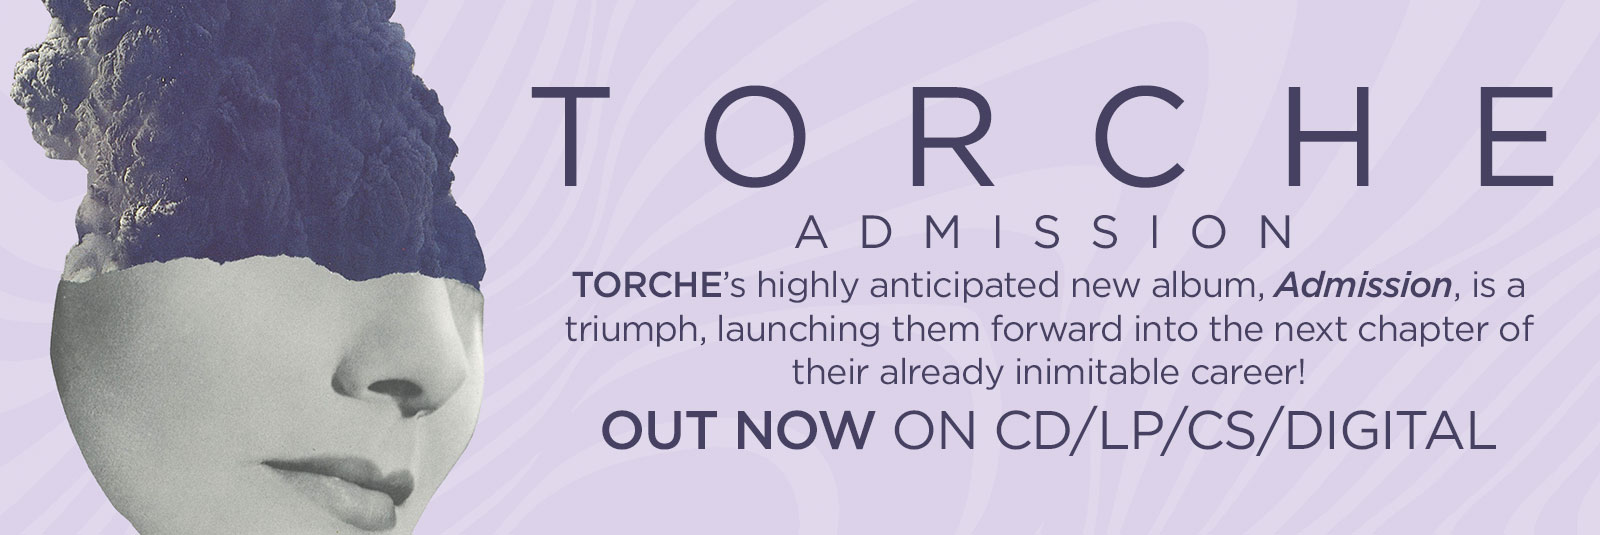 torche-admission-stoner-rock-heavy-rock-relapse-out-now